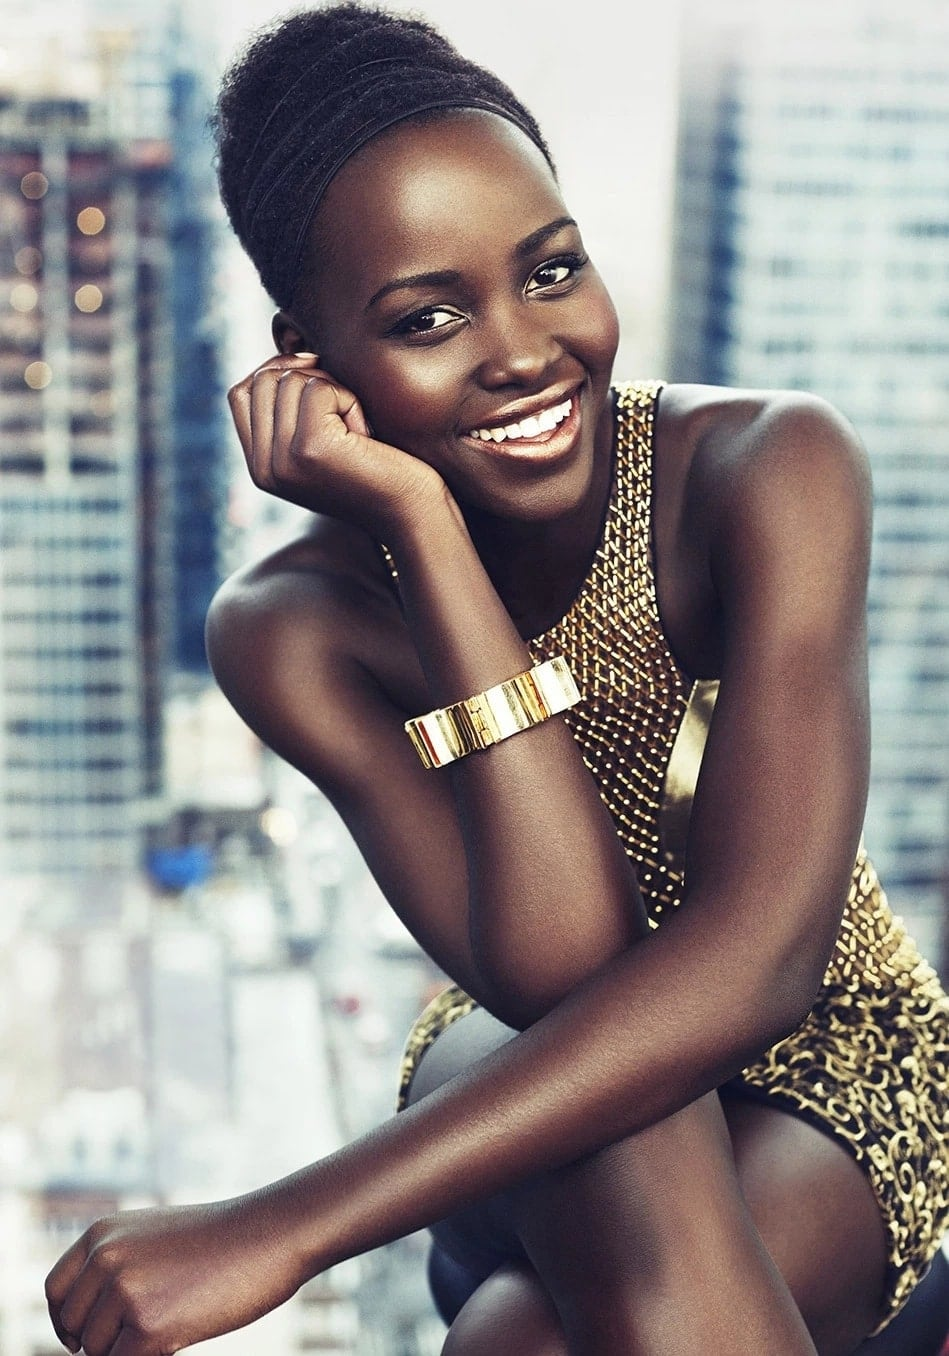 Kenyan celebrities houses Hottest Kenyan female celebrities Kenyan celebrities and their cars Richest Kenyan celebrities